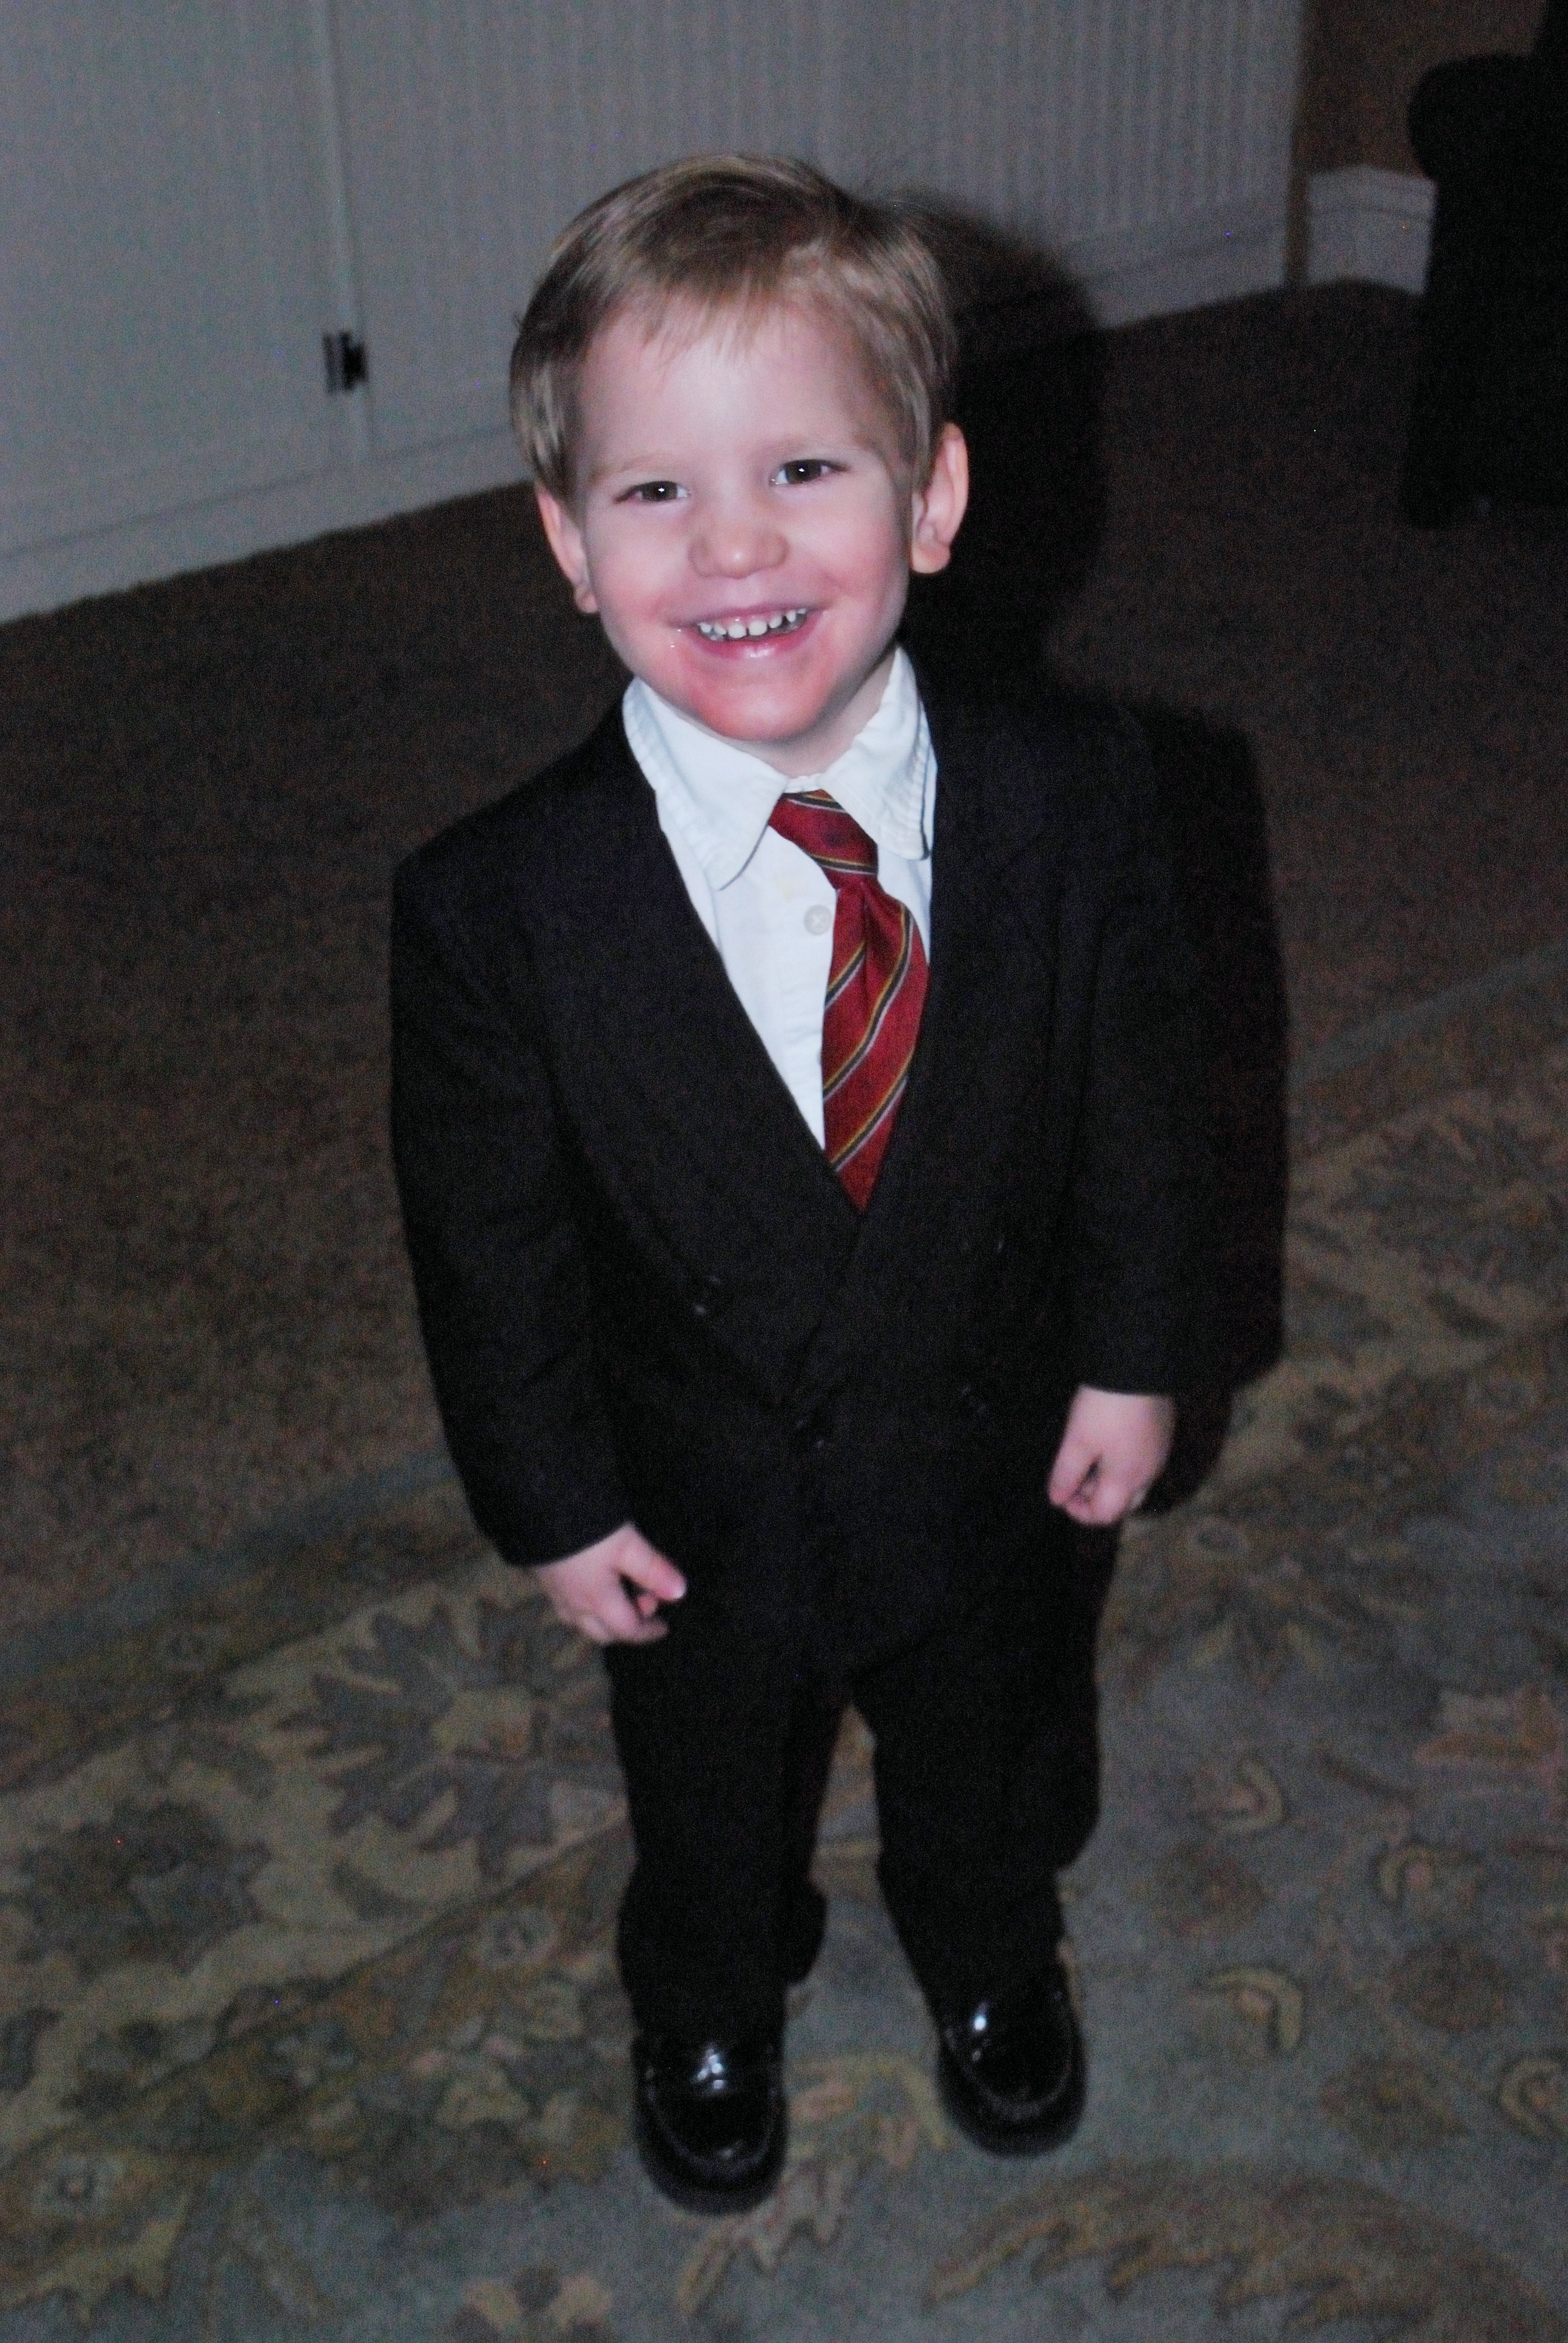 Shop boysâ suits to have him looking sharp for all those special events where he needs a more formal look. Boysâ dresswear will have him dressed to the nines with full suits and suit separates so you can mix-and-match his wardrobe. Sears is your go-to for boysâ suits.